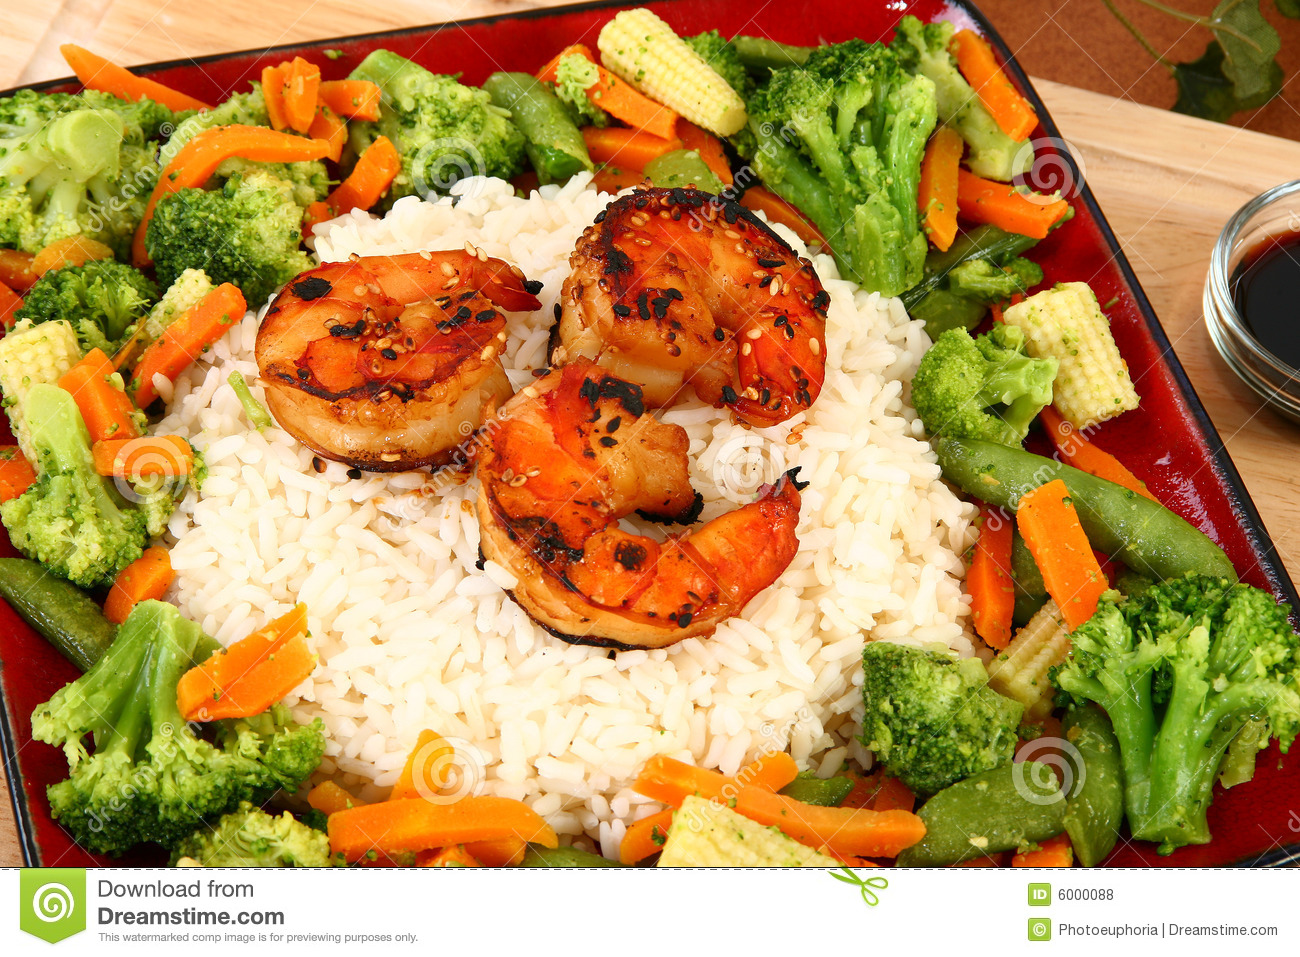 Ginger Teriyaki Shrimp With Rice And Veggies Royalty Free Stock Photos ...